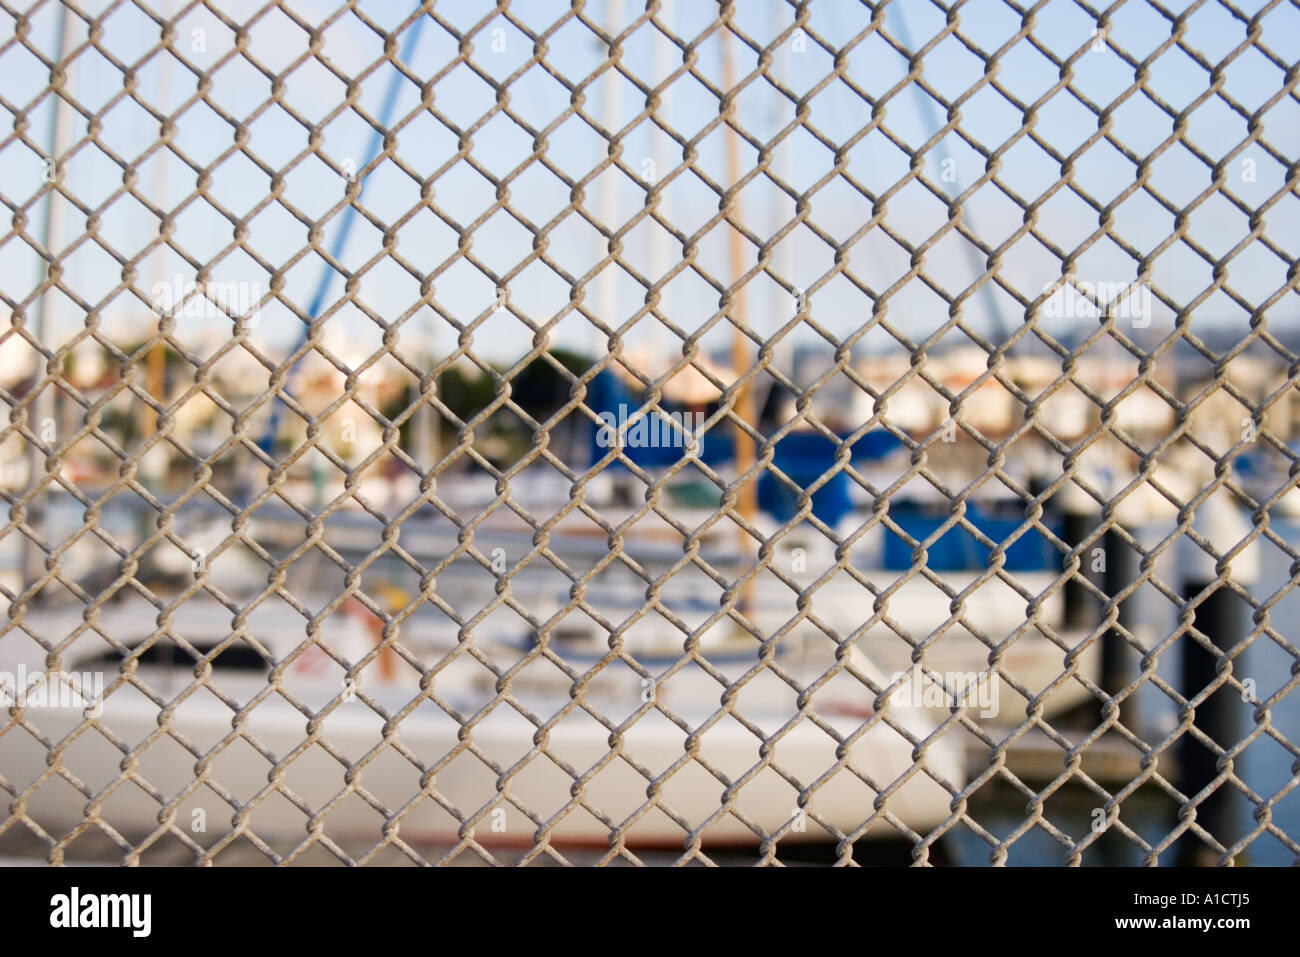 Yacht harbor behind chain link fence San Francisco California United States of America - Stock Image